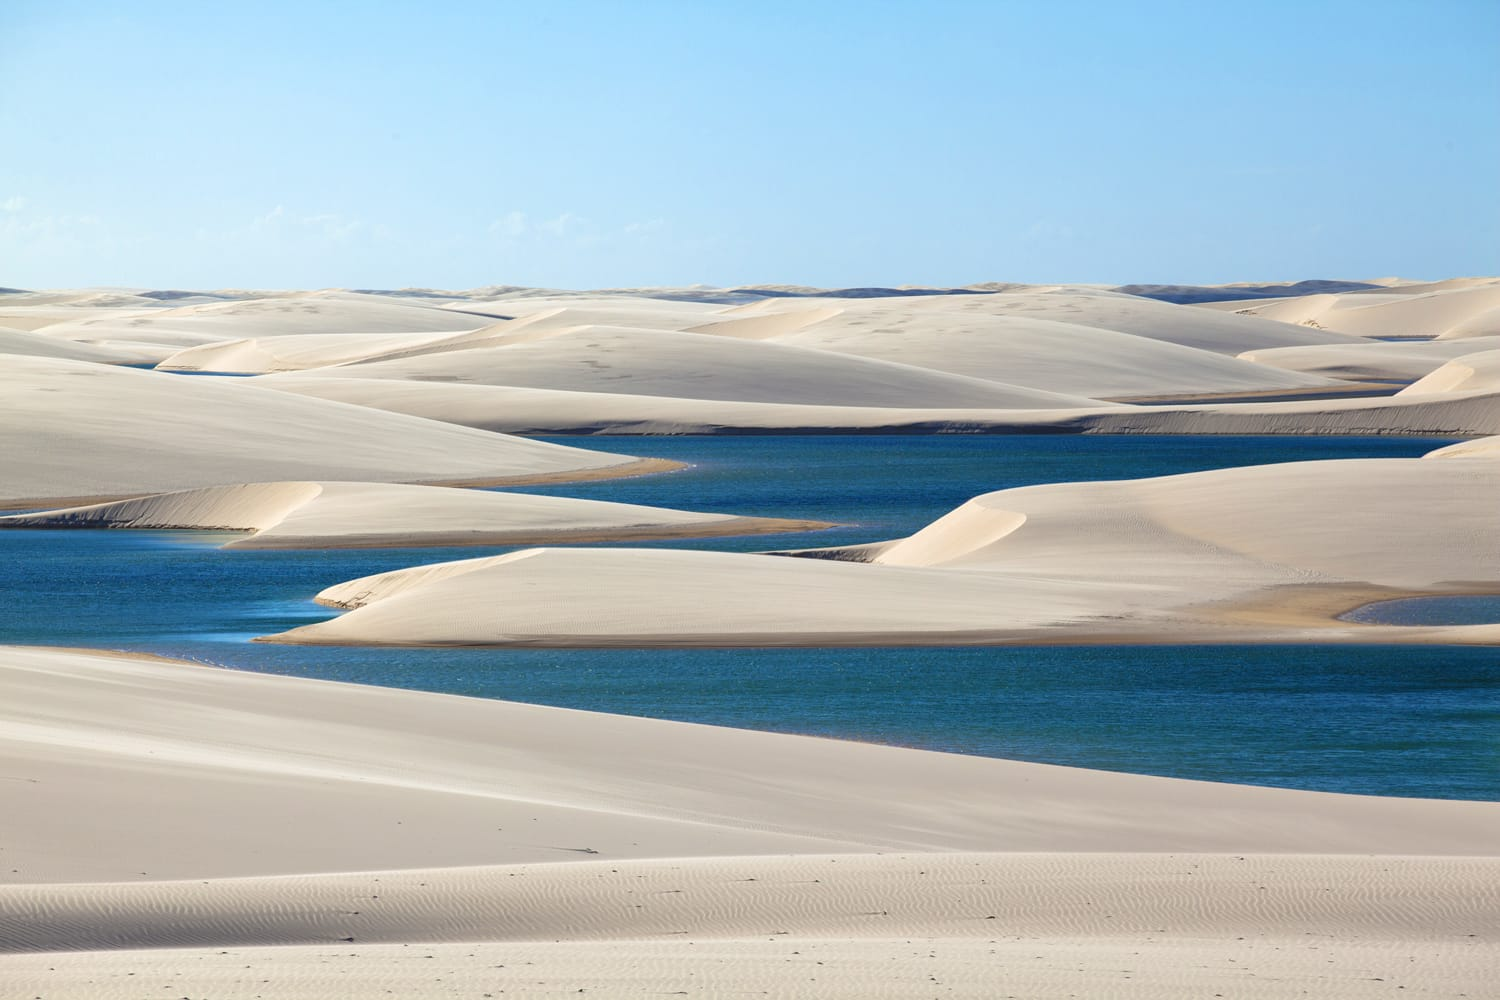 Lencois Maranhenses National Park in Brazil